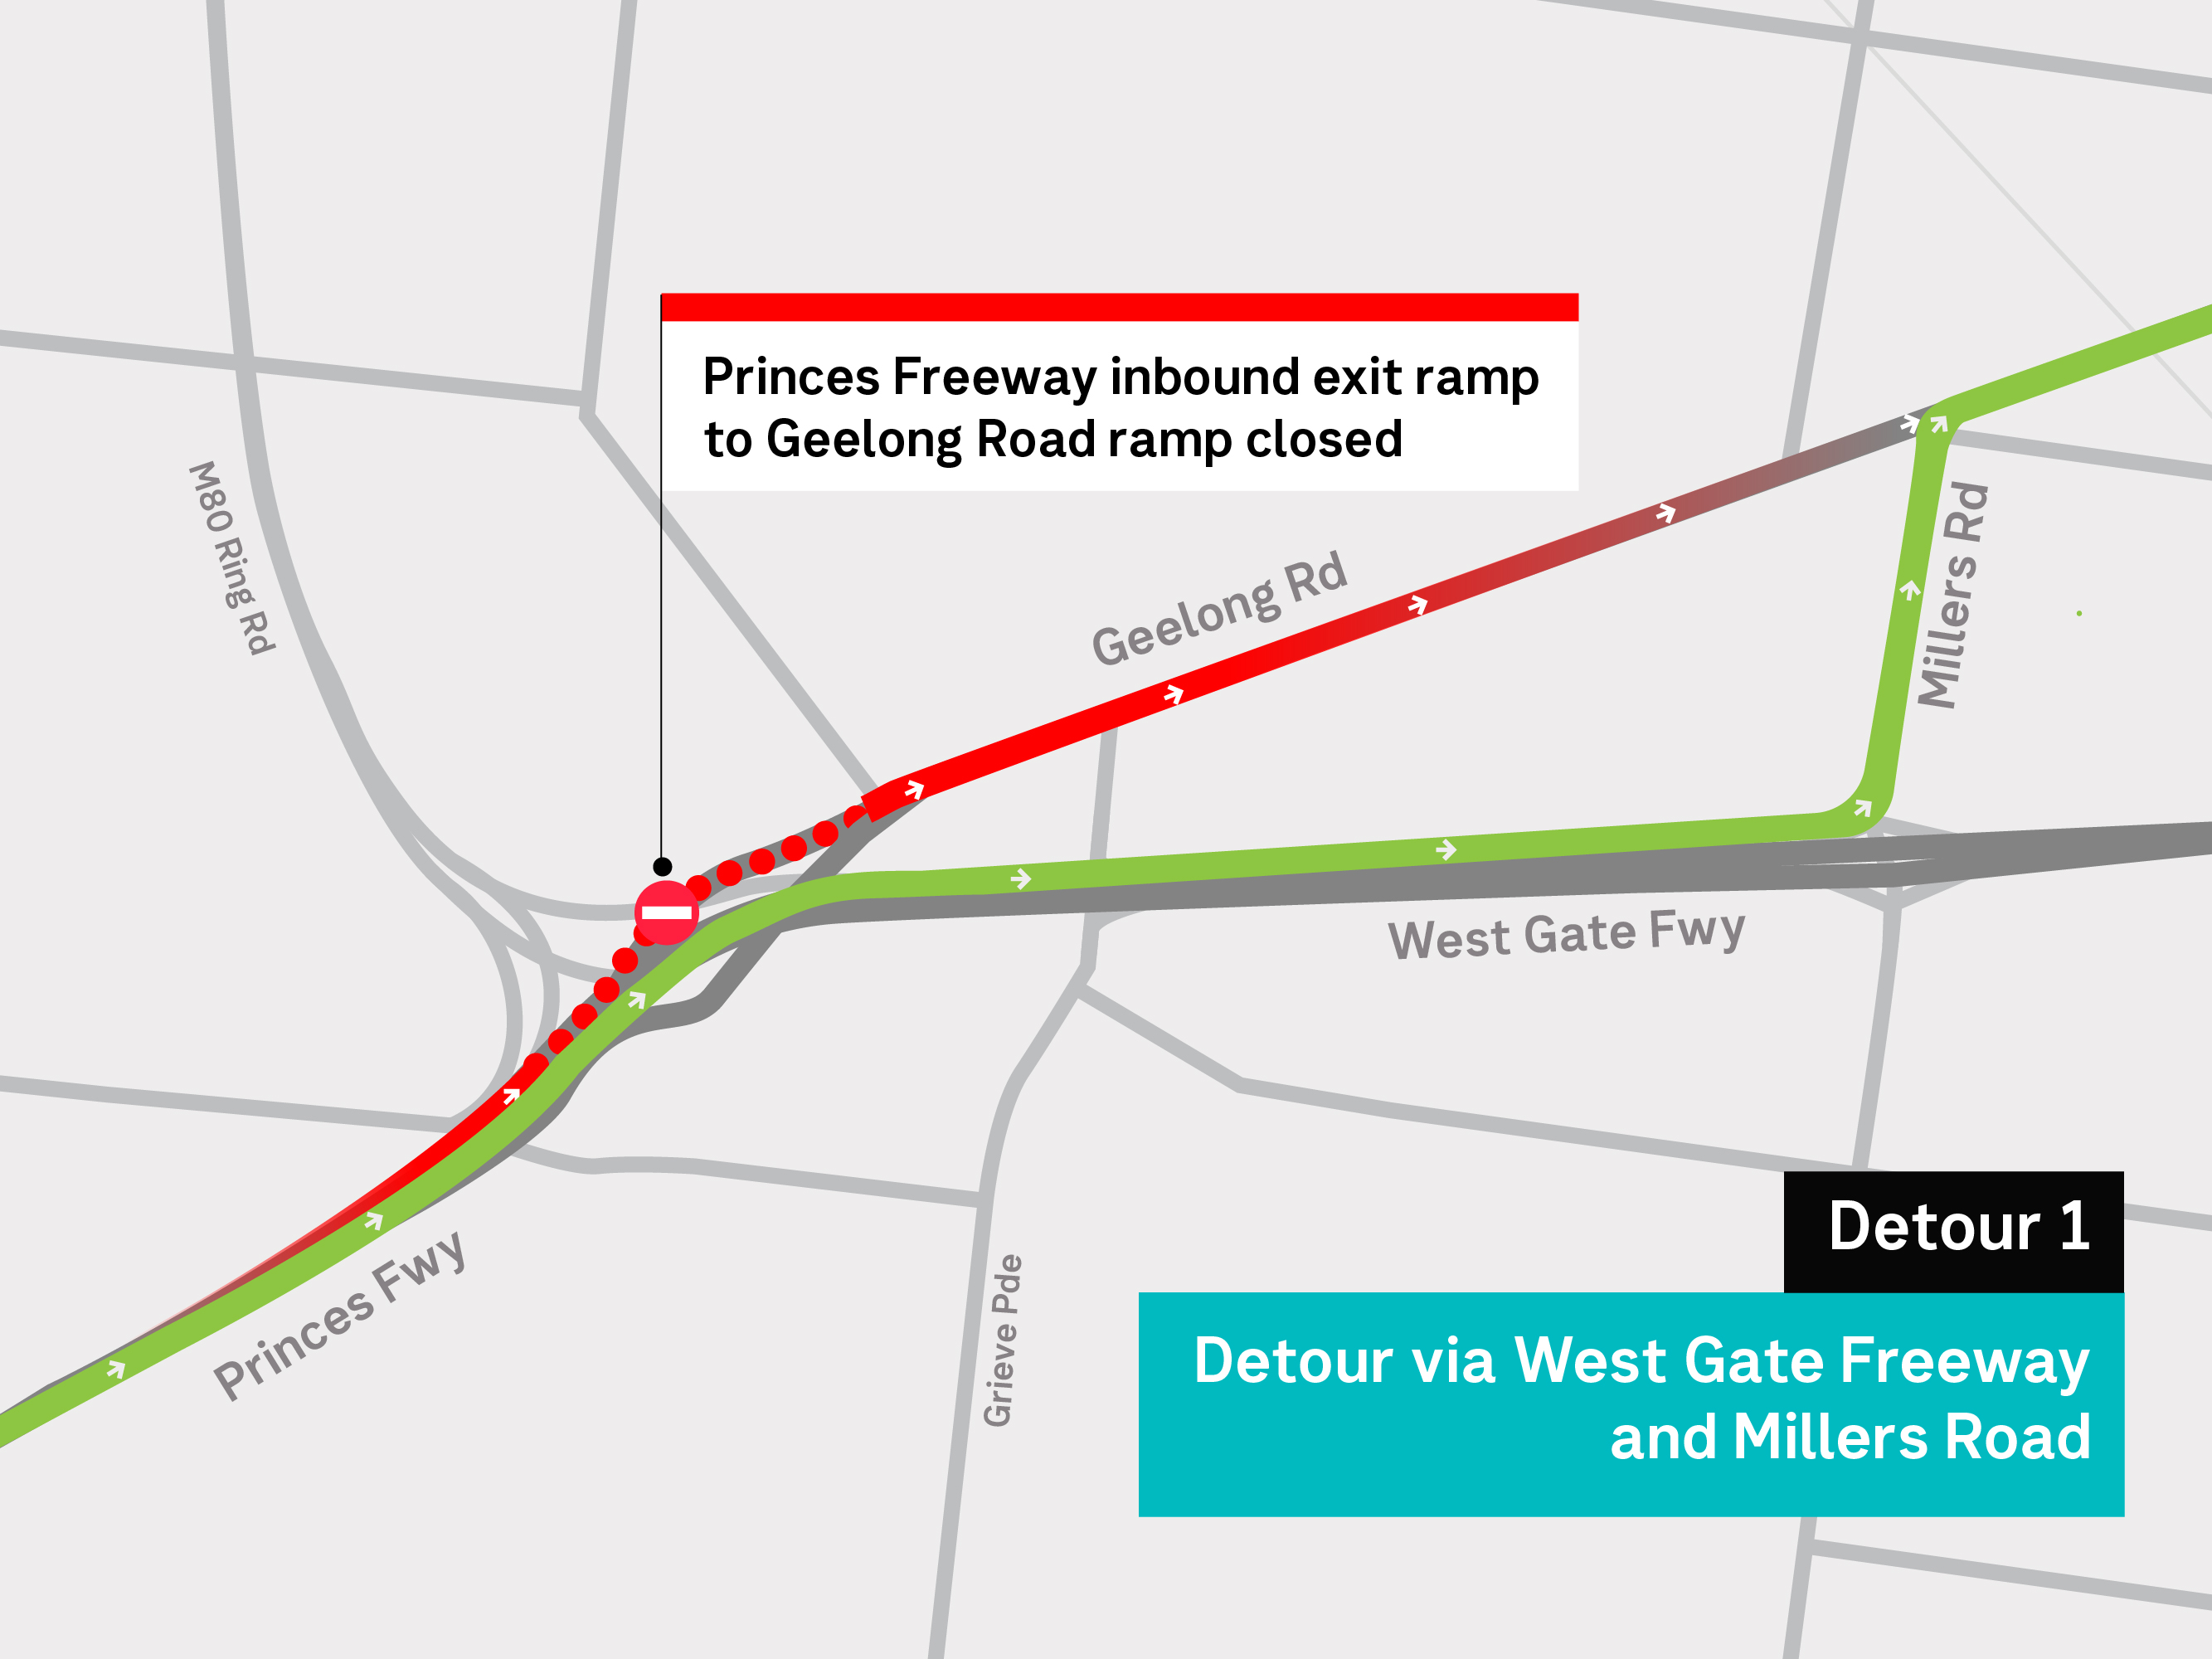 Detour map for Princes Freeway to Geelong Road ramp closure. Suggested detour route via West Gate Freeway and Millers Road